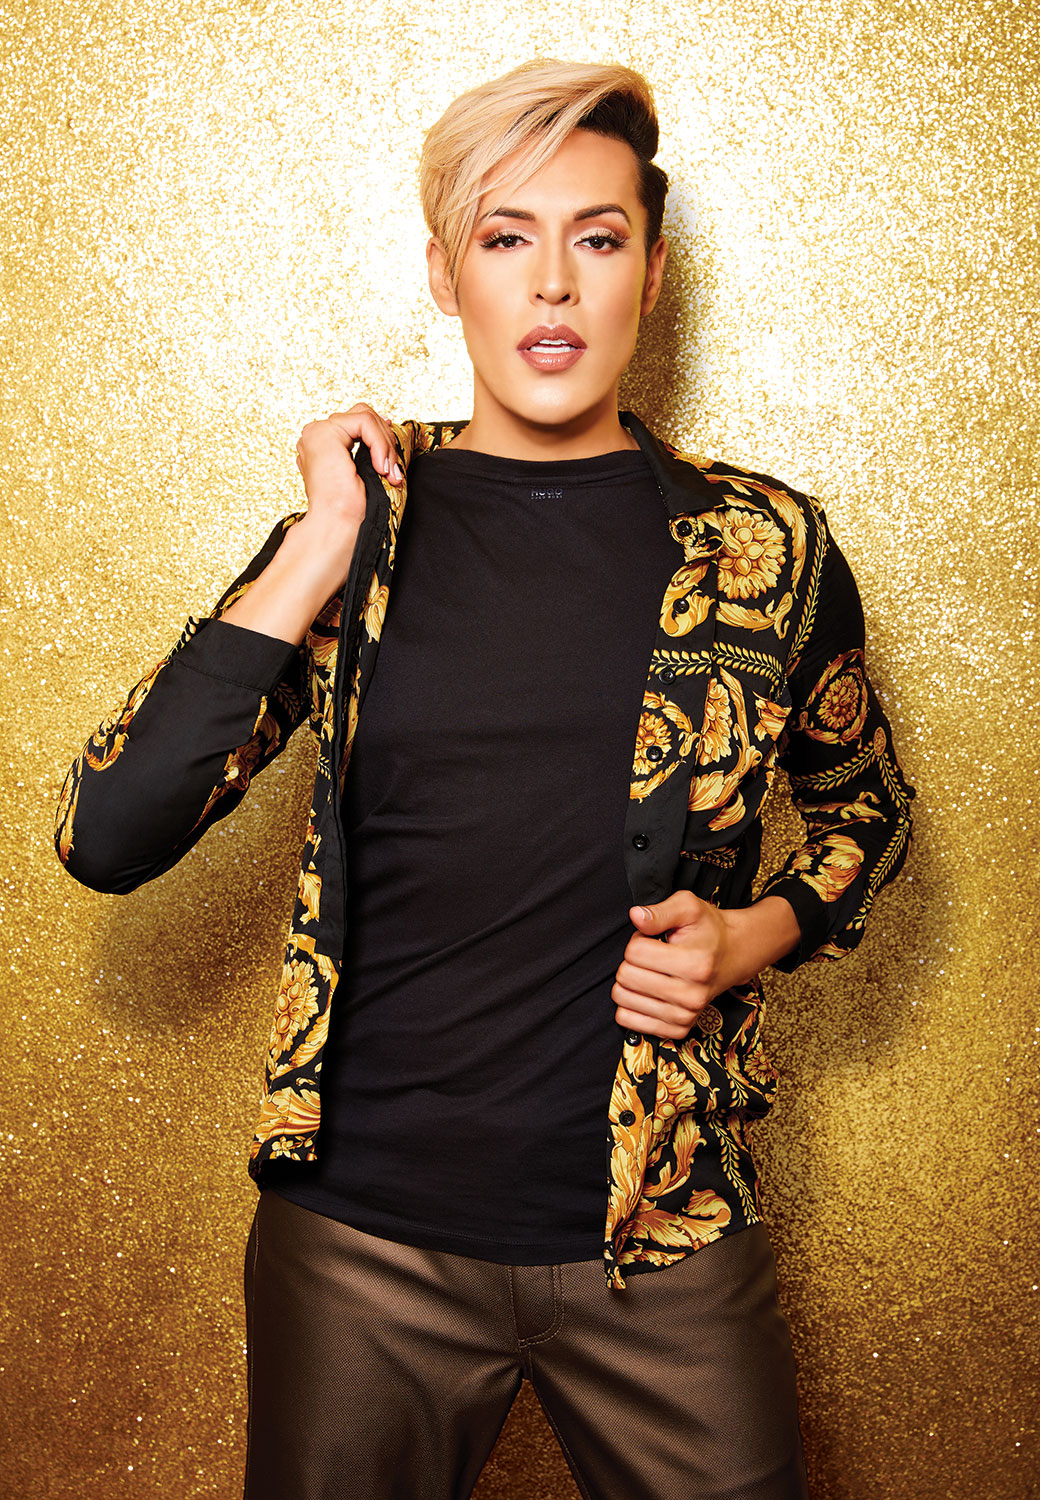 Dario standing in front of golden glitter, spreading his gold embroidered jacket with his hands